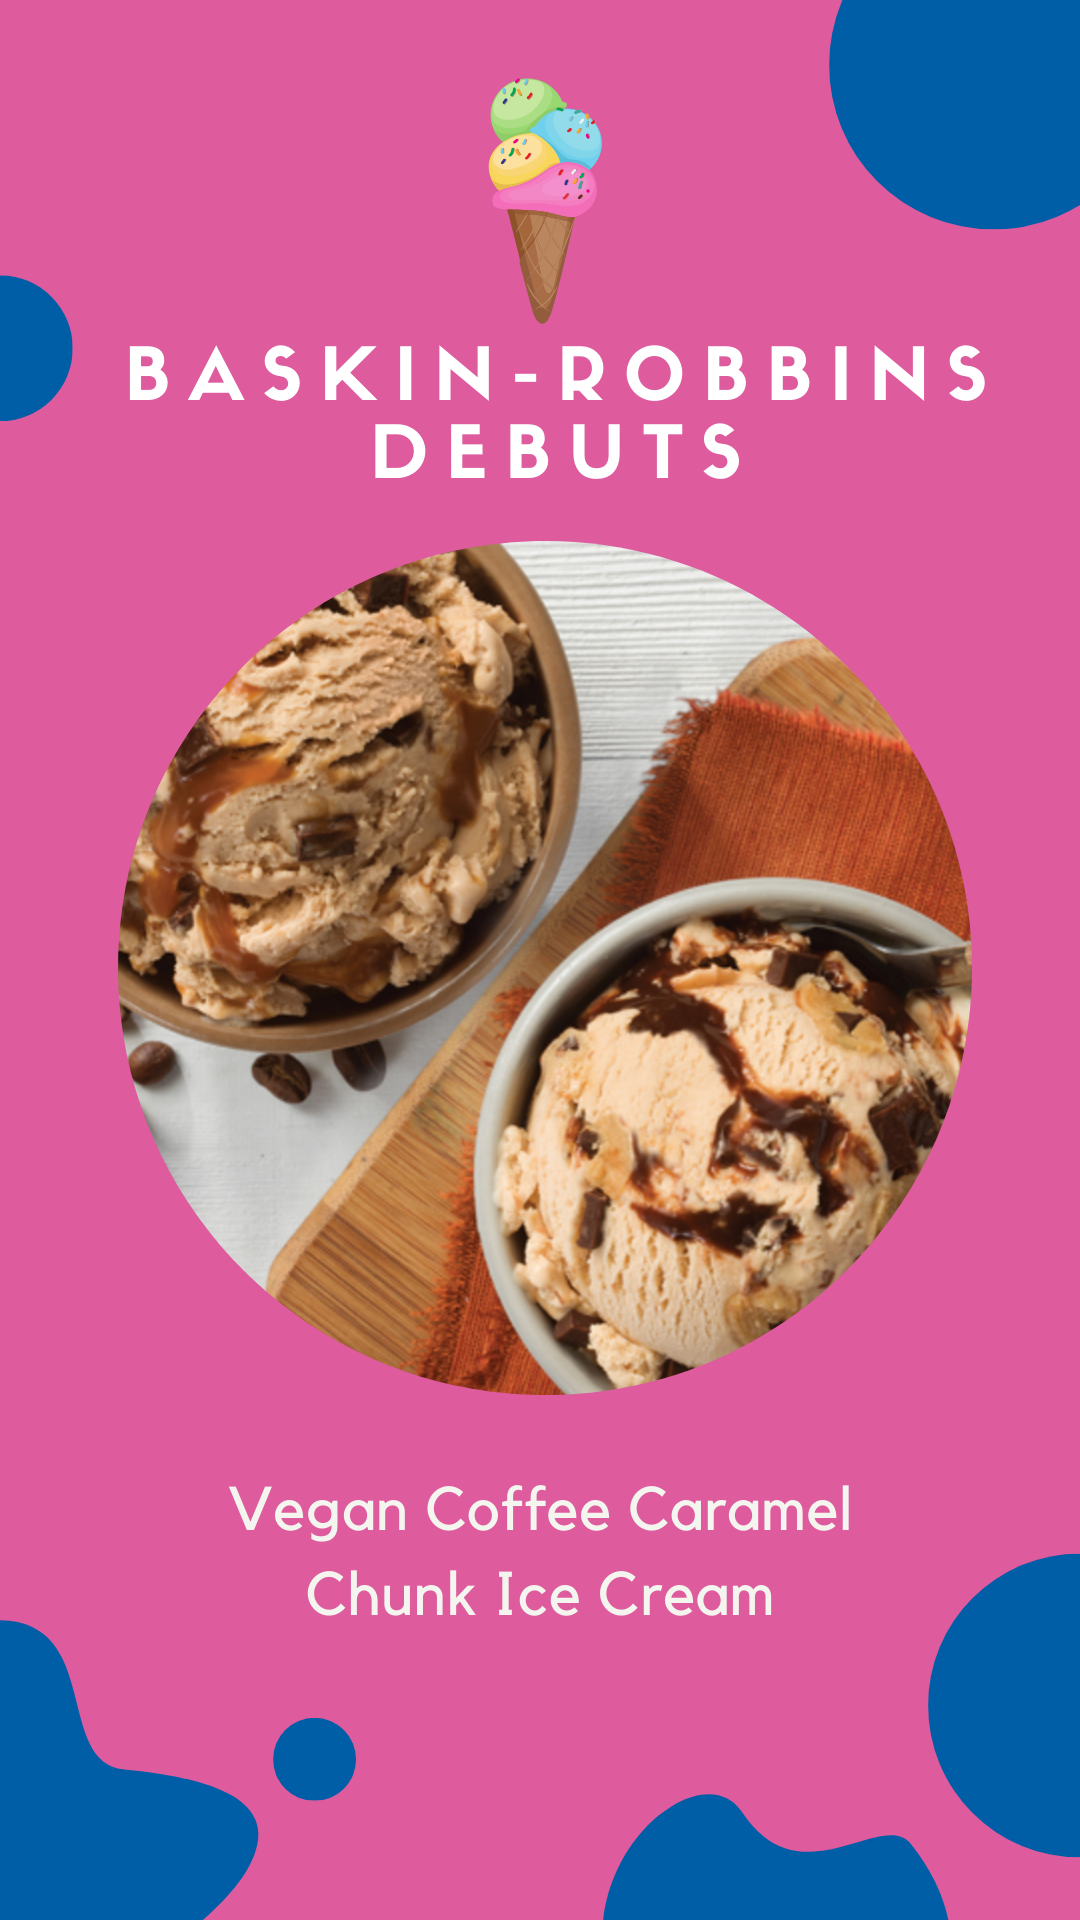 Baskin-Robbins Debuts Vegan Coffee Caramel Chunk Ice Cream